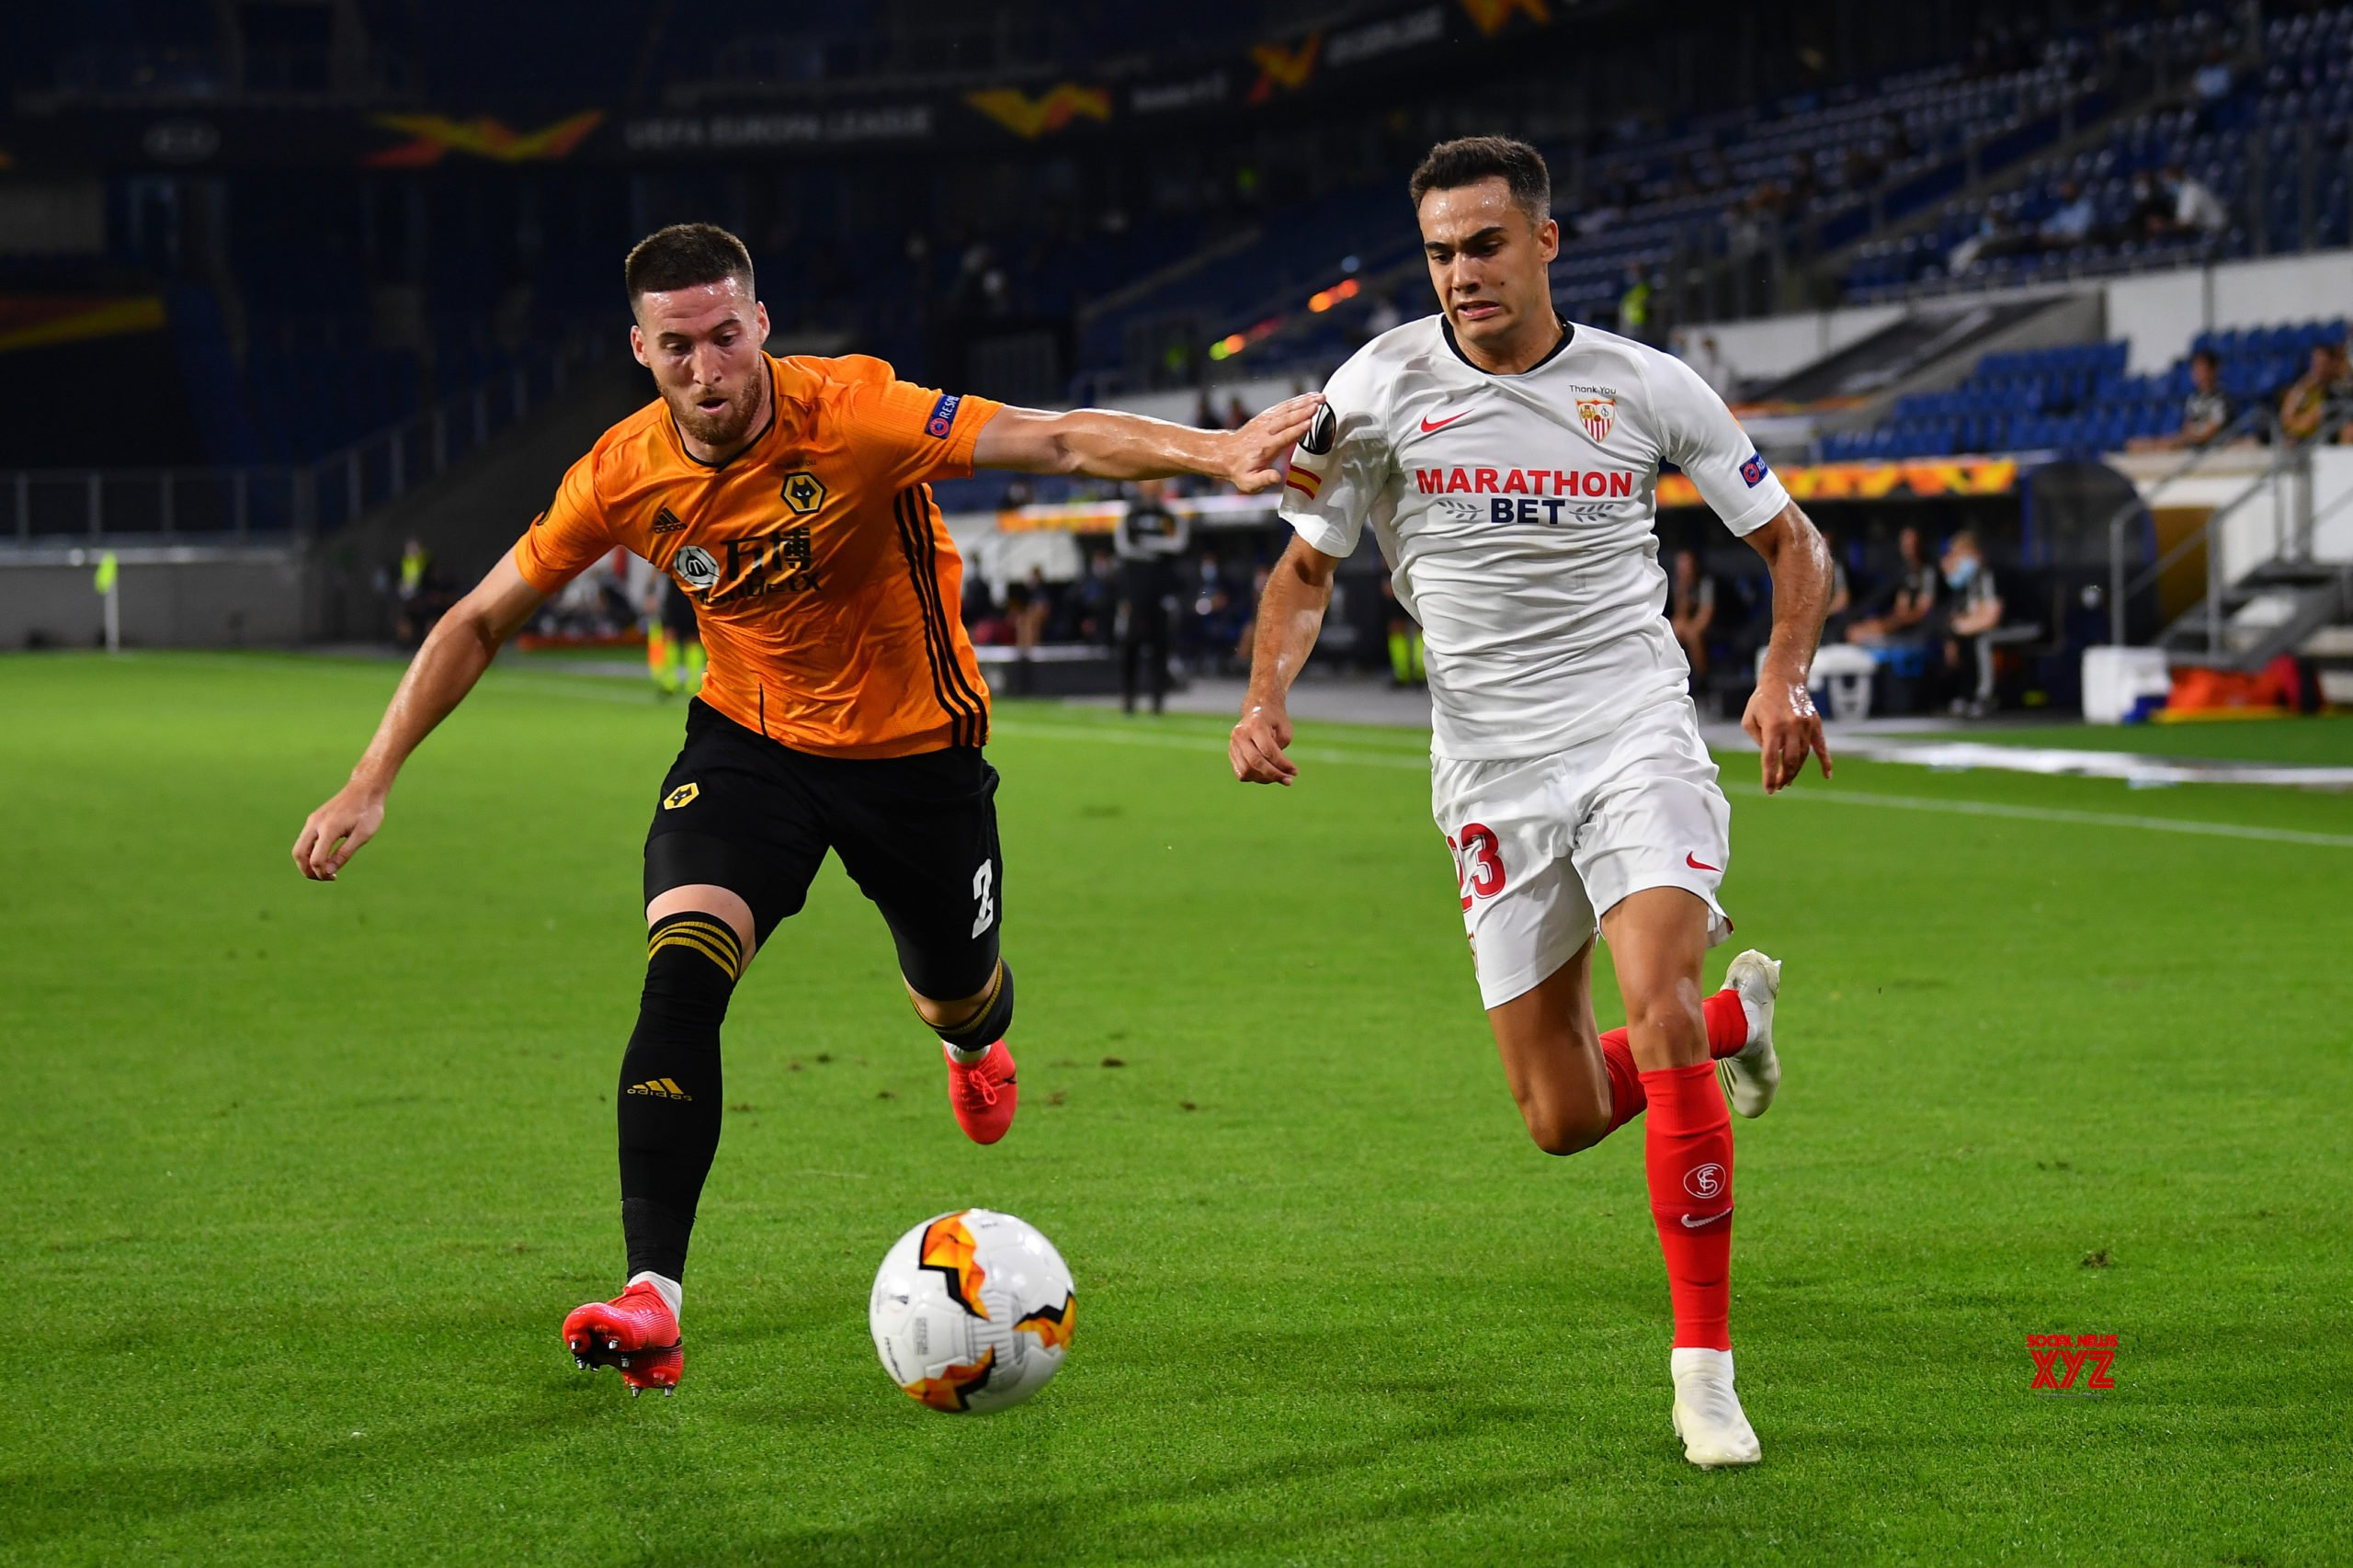 GERMANY - DUISBURG - FOOTBALL - UEFA EUROPA LEAGUE - WOLVERHAMPTON VS SEVILLA #Gallery